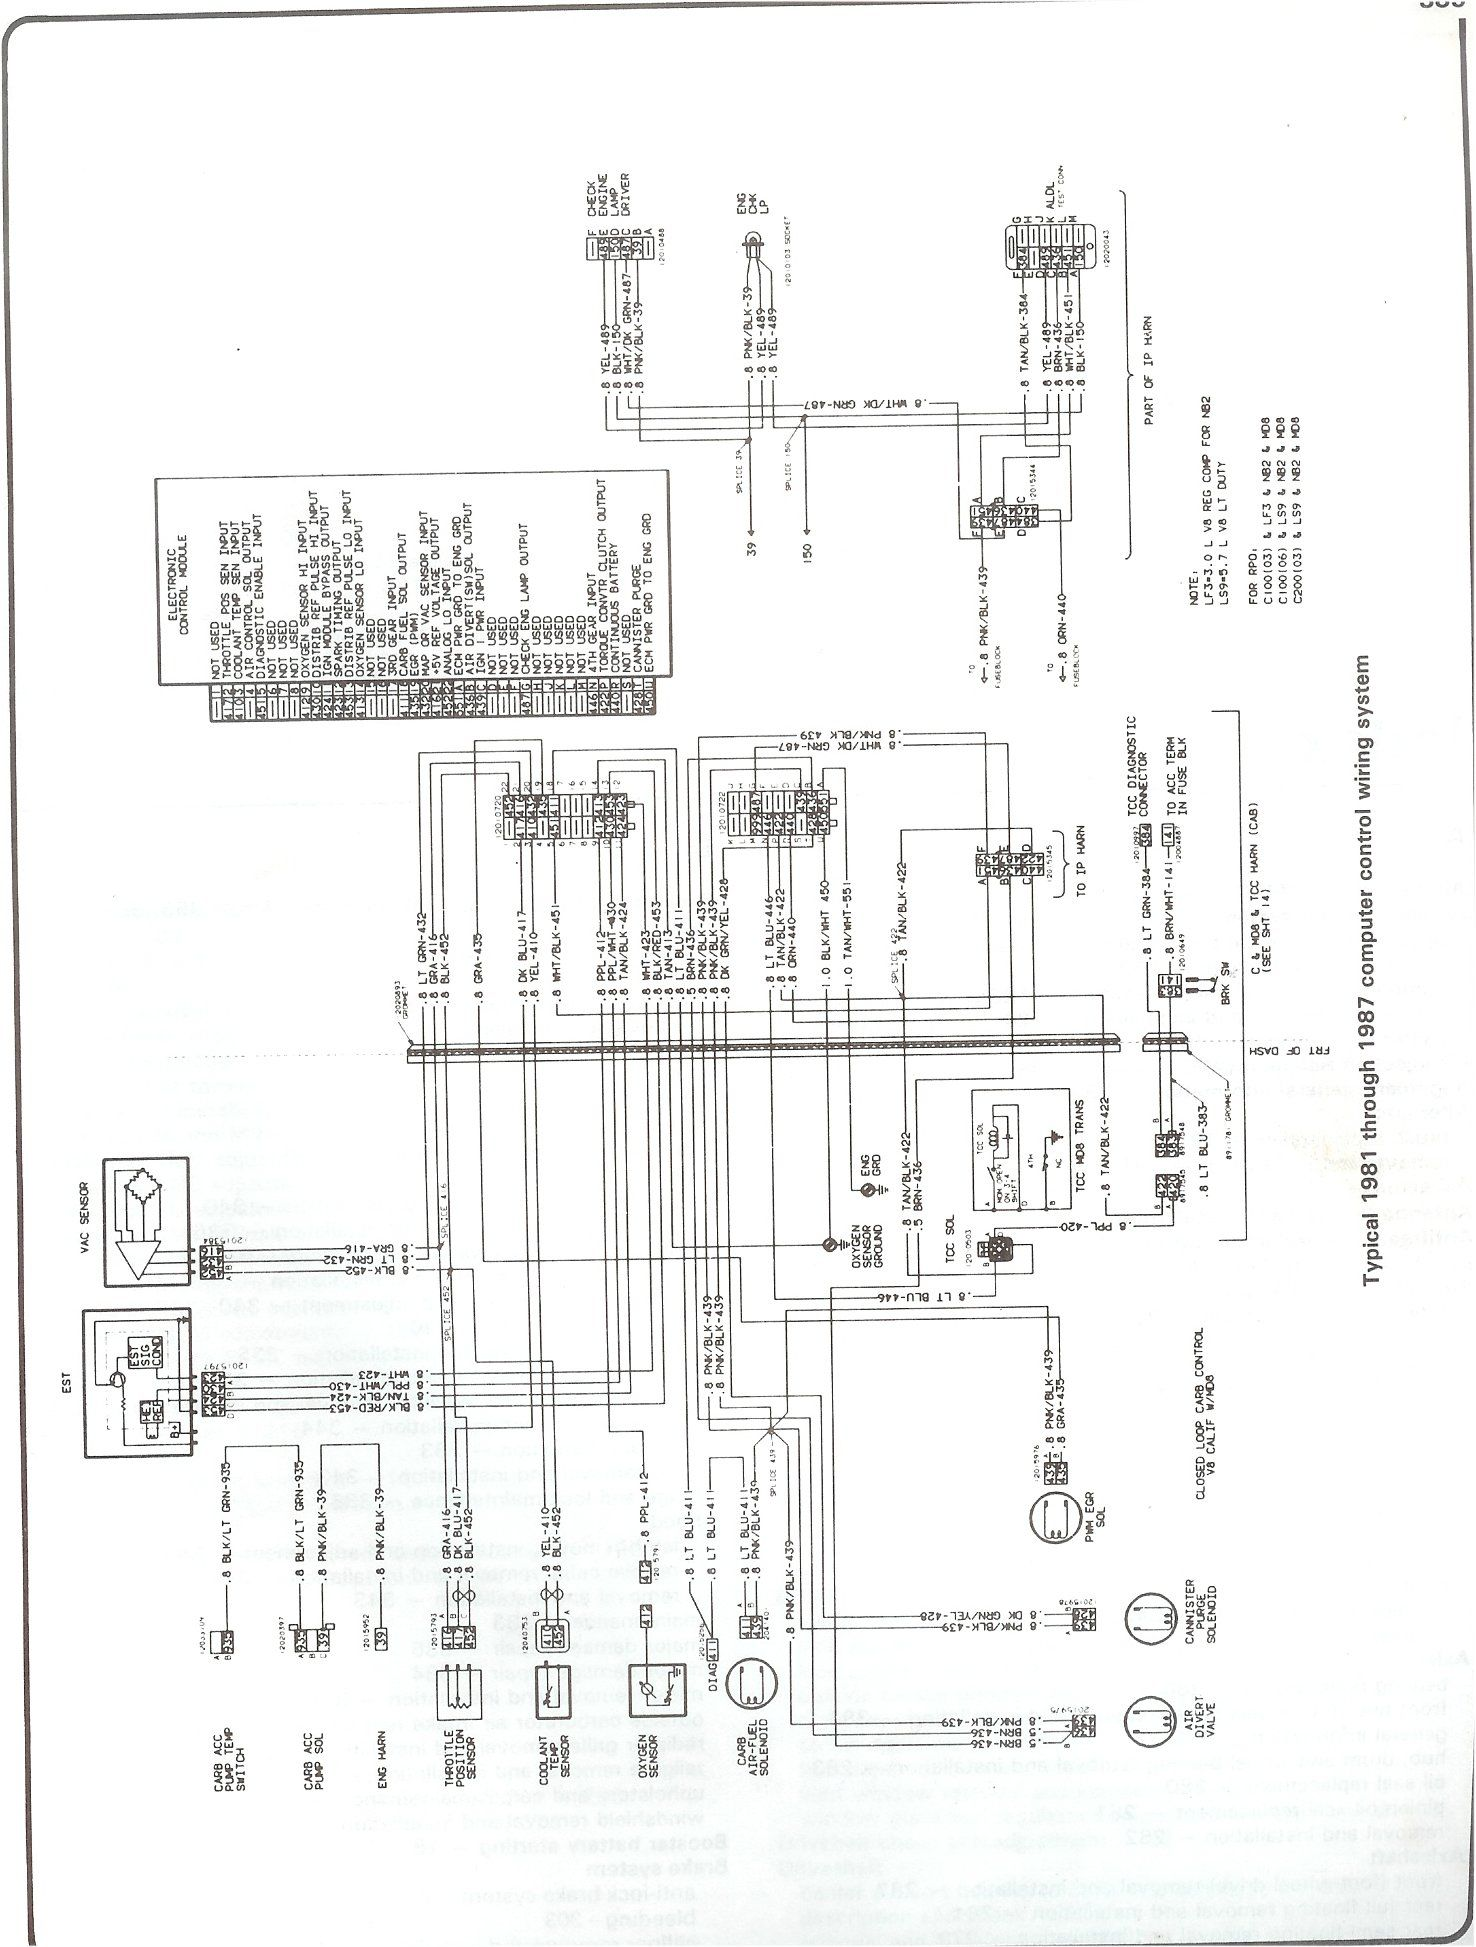 1980 chevy truck dash wiring diagram